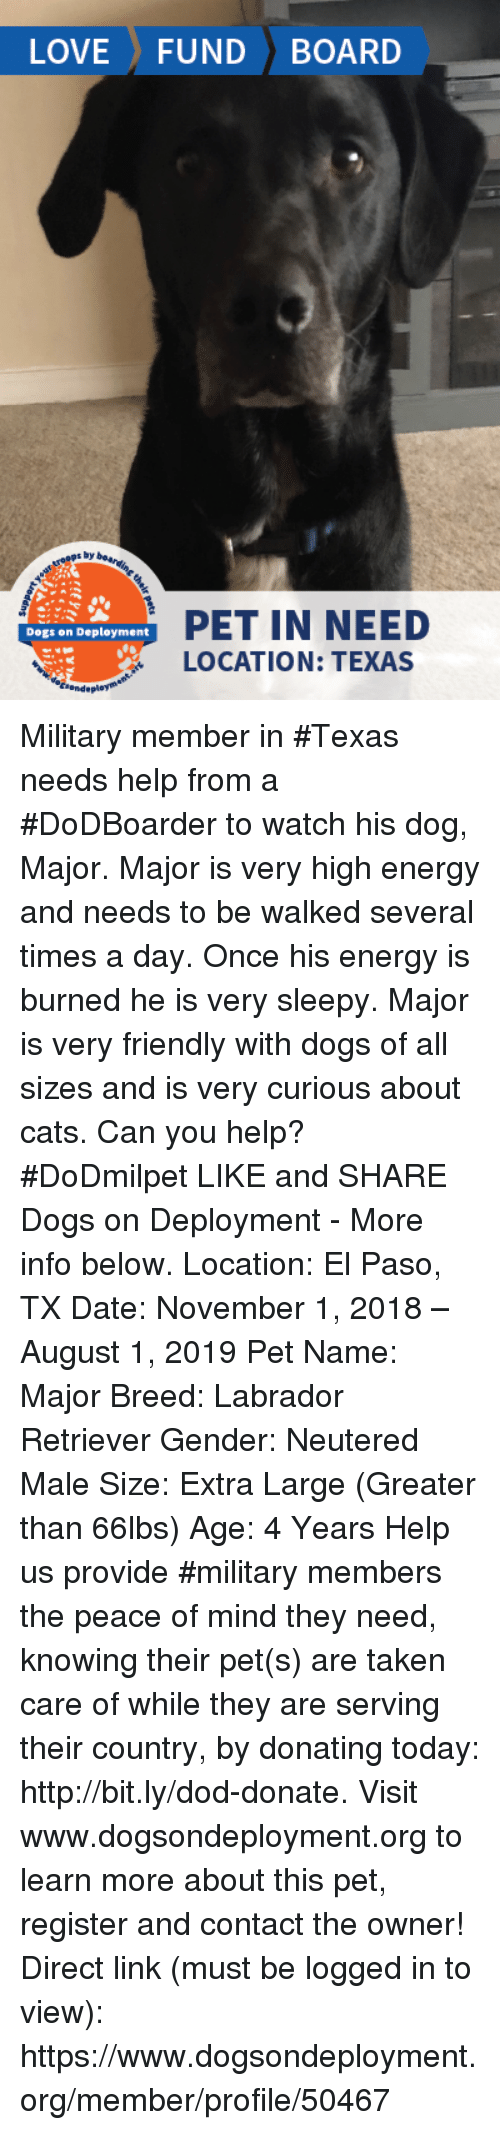 Cats, Dogs, and Energy: LOVE FUND BOARD  s by  PET IN NEED  LOCATION: TEXAS  Dogs on Deployment Military member in #Texas needs help from a #DoDBoarder to watch his dog, Major.  Major is very high energy and needs to be walked several times a day. Once his energy is burned he is very sleepy. Major is very friendly with dogs of all sizes and is very curious about cats. Can you help? #DoDmilpet   LIKE and SHARE Dogs on Deployment - More info below.   Location: El Paso, TX Date: November 1, 2018 – August 1, 2019  Pet Name: Major Breed: Labrador Retriever Gender: Neutered Male Size: Extra Large (Greater than 66lbs) Age: 4 Years  Help us provide #military members the peace of mind they need, knowing their pet(s) are taken care of while they are serving their country, by donating today: http://bit.ly/dod-donate.   Visit www.dogsondeployment.org to learn more about this pet, register and contact the owner!  Direct link (must be logged in to view): https://www.dogsondeployment.org/member/profile/50467